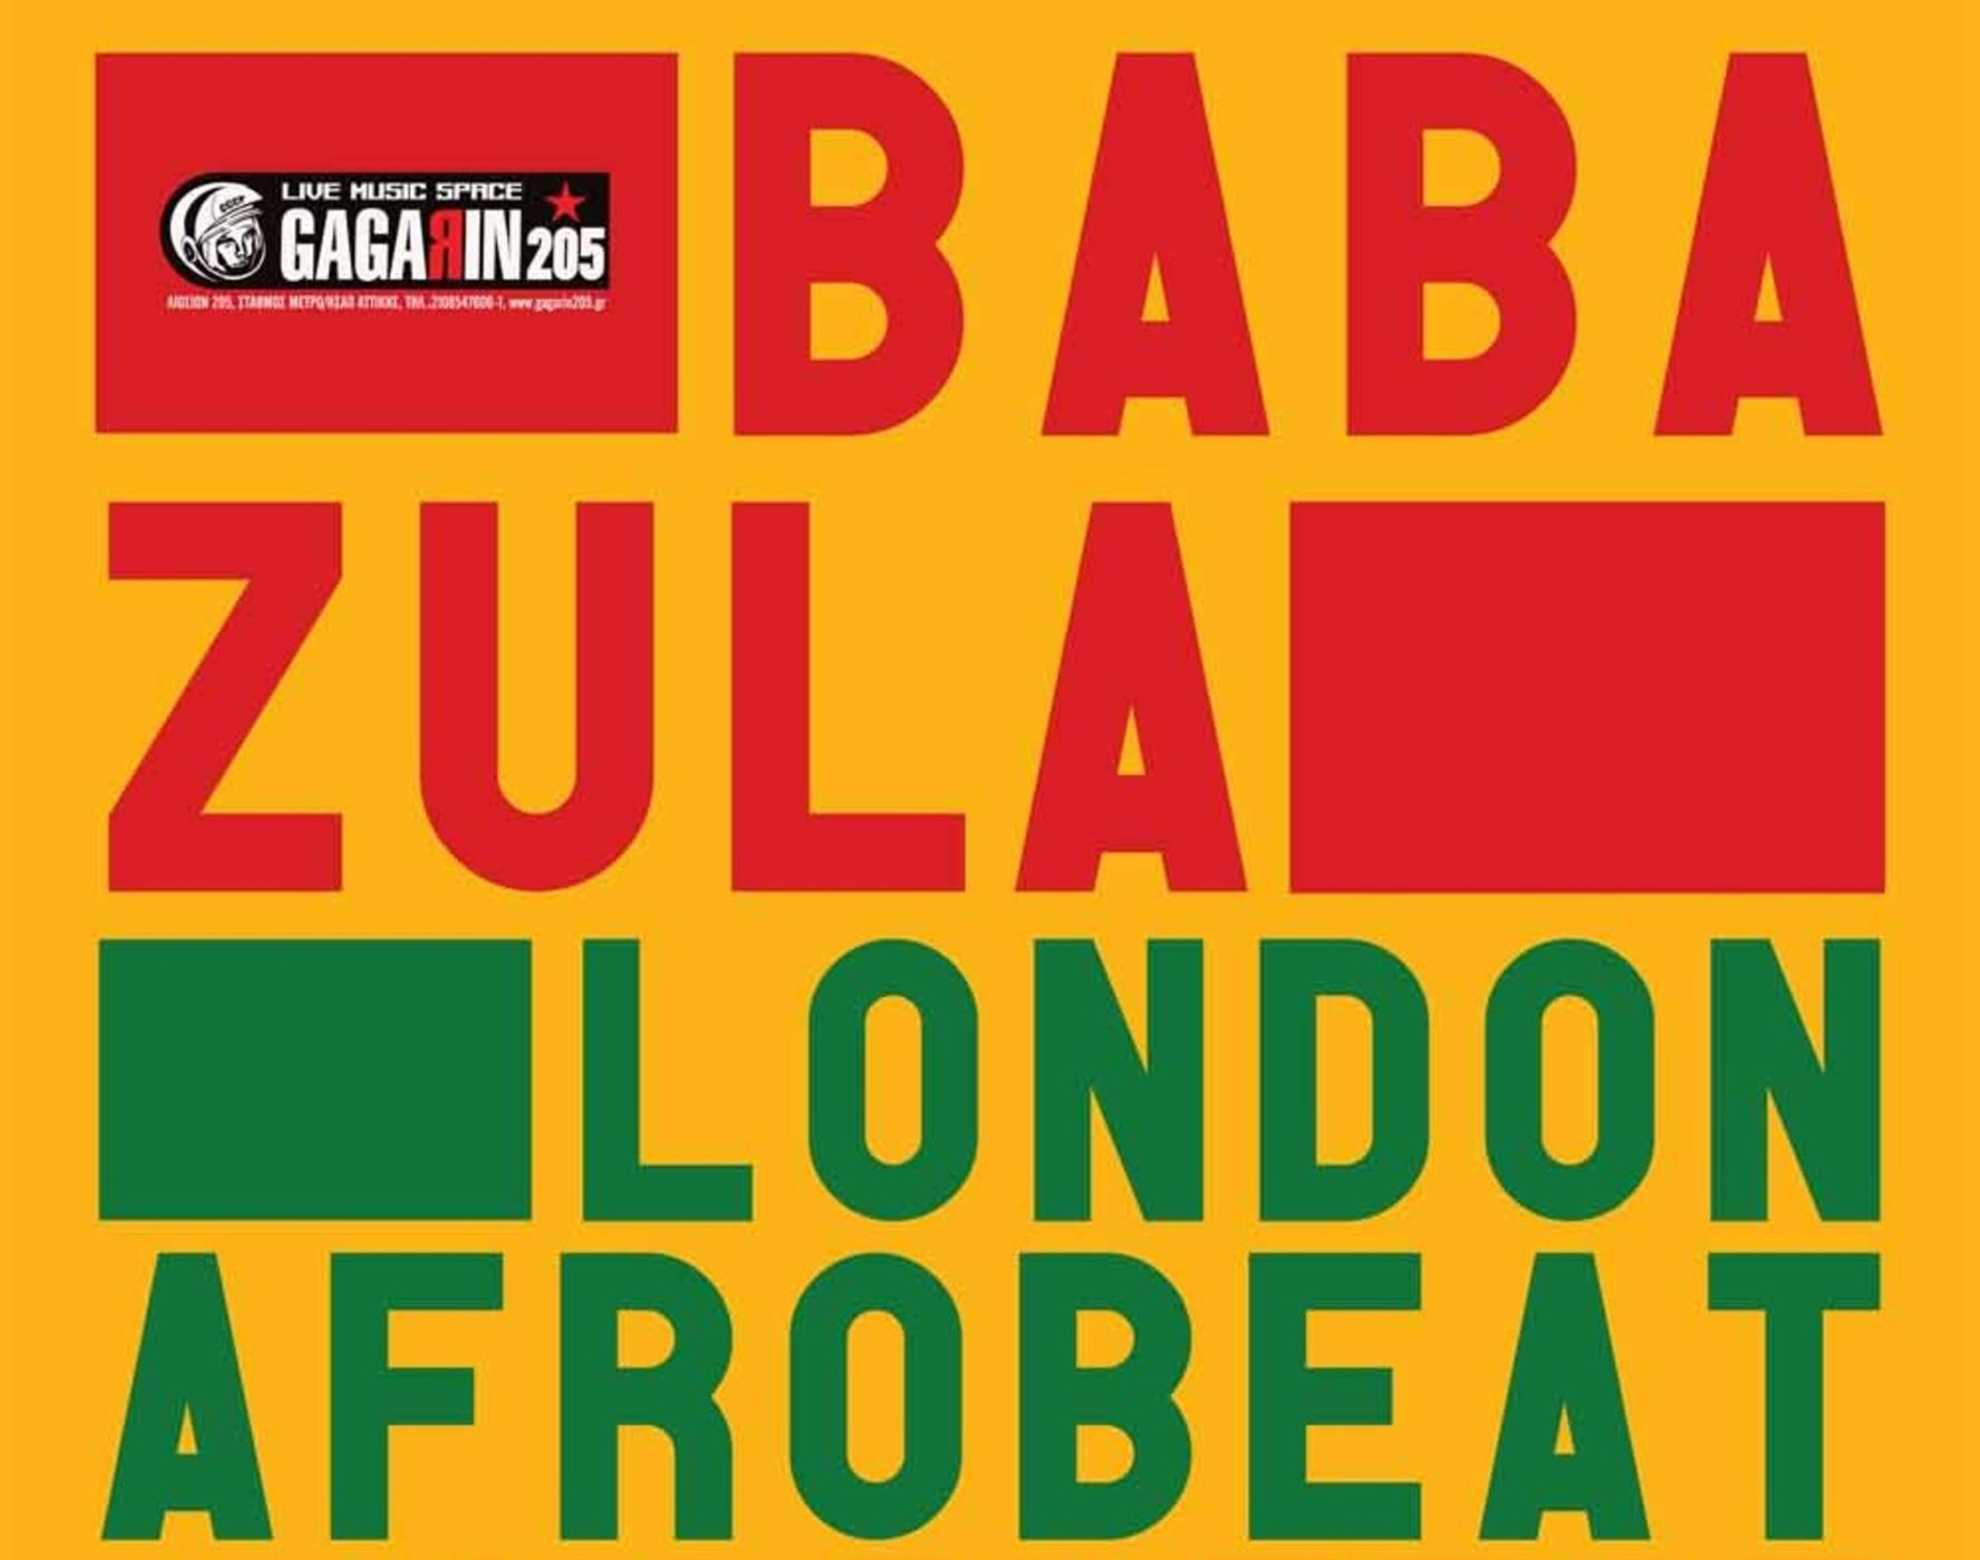 BLENDER FEST: BABA ZULA + LONDON AFROBEAT COLLECTIVE + ΡΟΔΕΣ UNITED Gagarin 205, Αθήνα